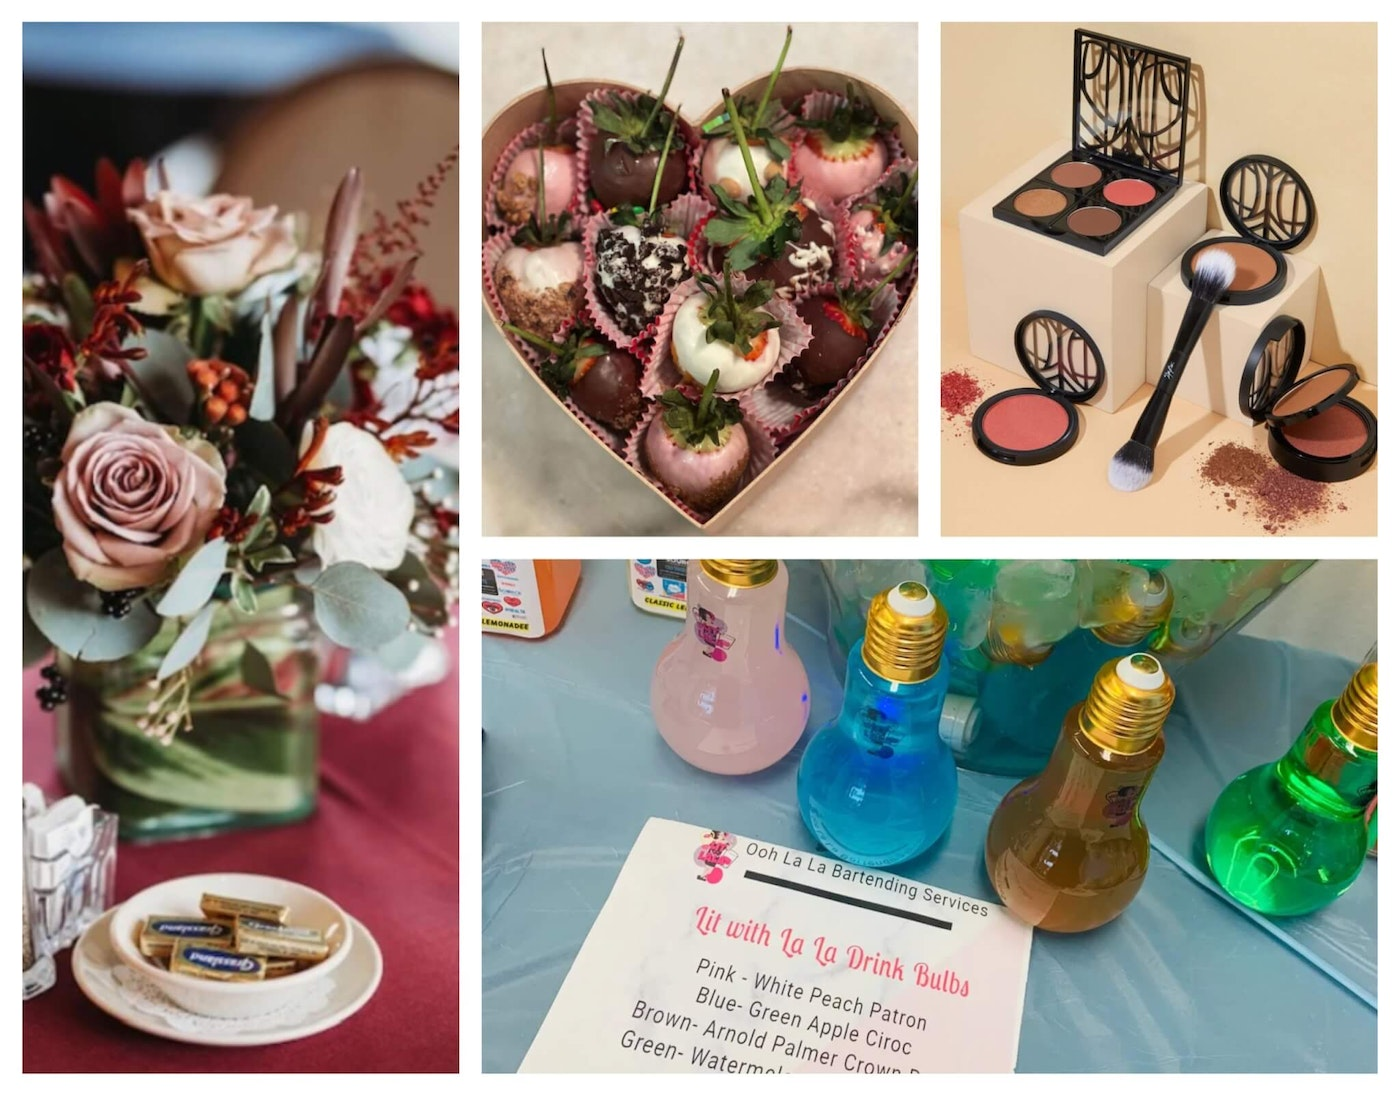 Photos courtesy of Angel Floral Creations, K.D. & Co., The Lip Bar, and La La's  Libations